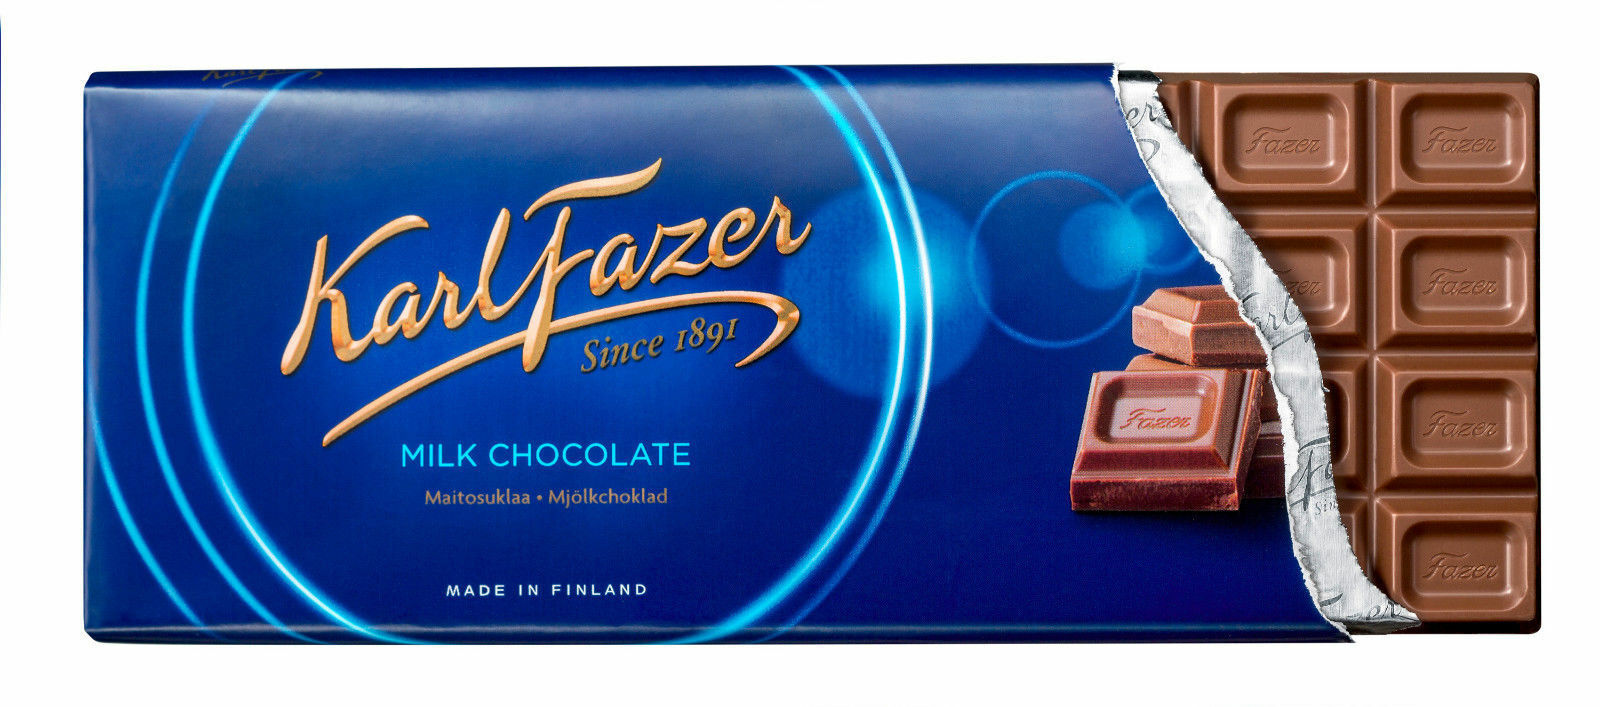 marketing chocolate in finland Fazer is an international family-owned company offering quality bakery, confectionery, biscuit and grain products, plant-based meals and non-dairy products as well as food and café services we operate in eight countries and export to around 40 countries.